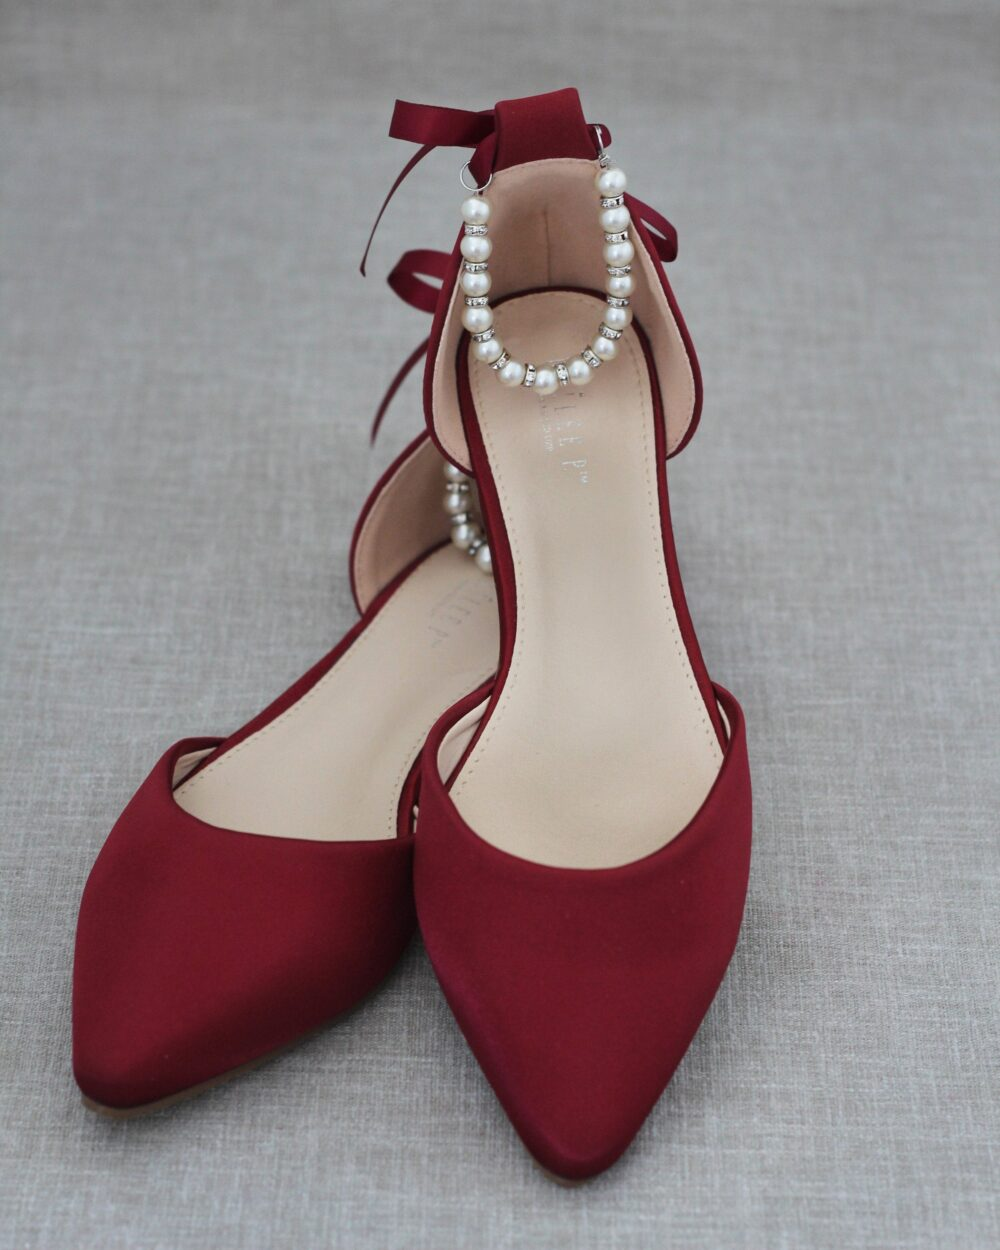 Burgundy Satin Pointy Toe Flats With Pearls Ankle Strap, Maroon Wedding Shoes, Bridesmaid Wine Bridal Flats, Holiday Evening Shoes